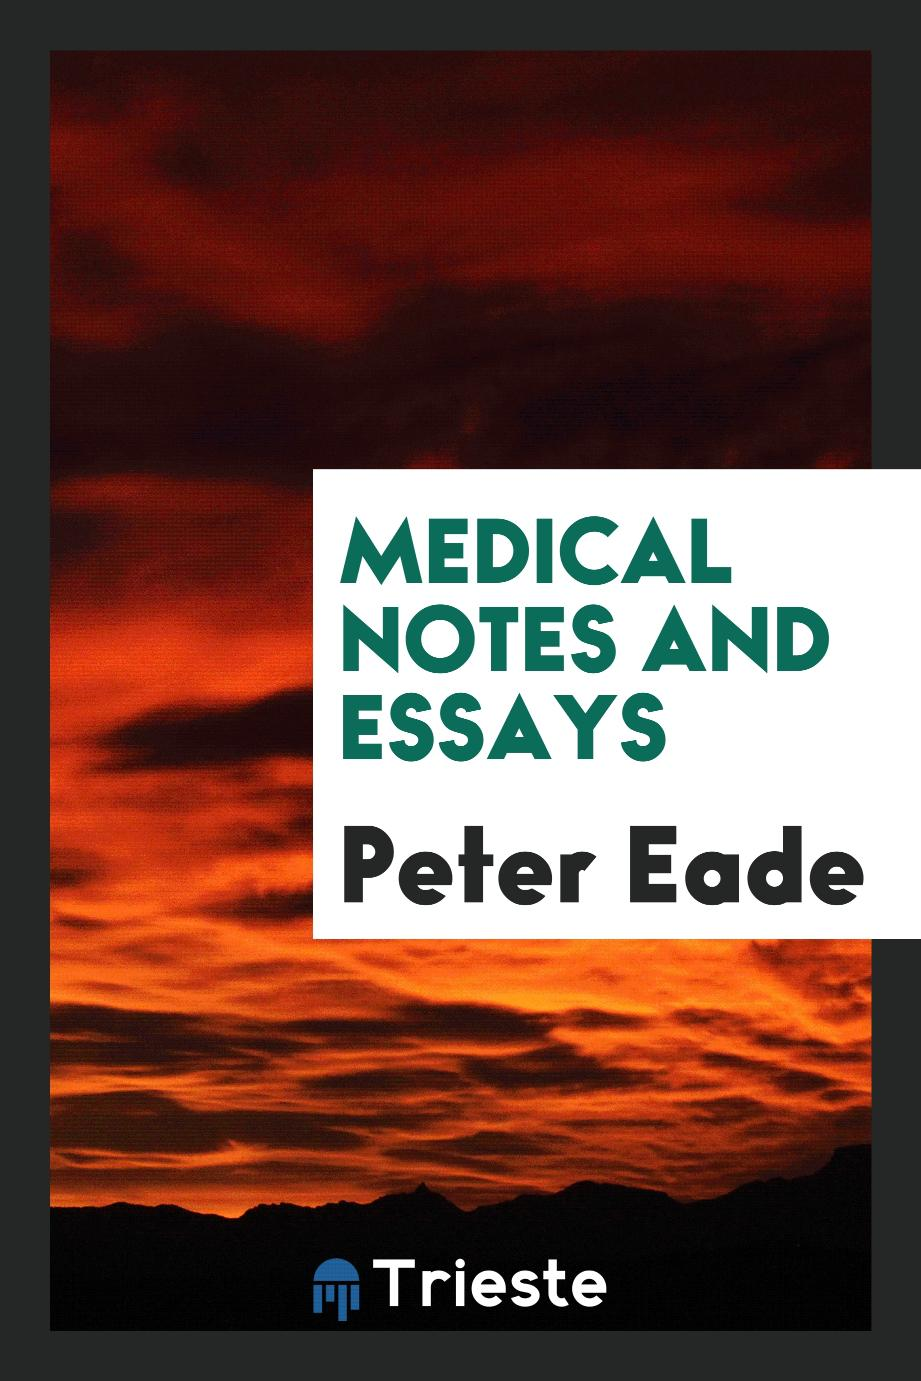 Medical Notes and Essays